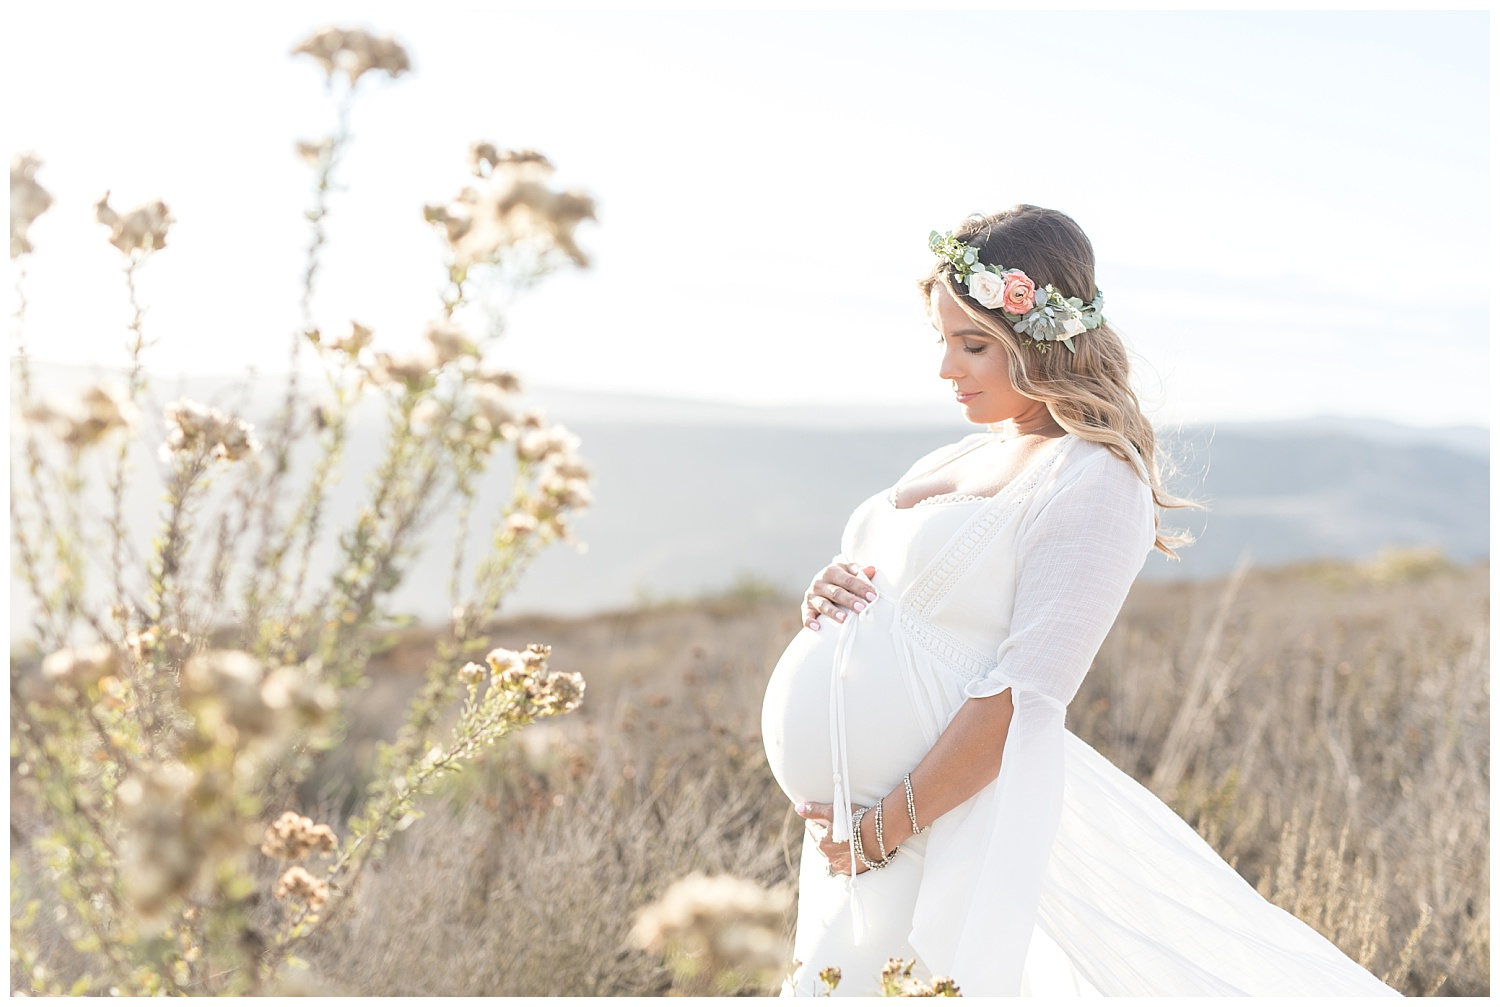 ashley - laguna beach, orange county hiking trail - maternity-0026